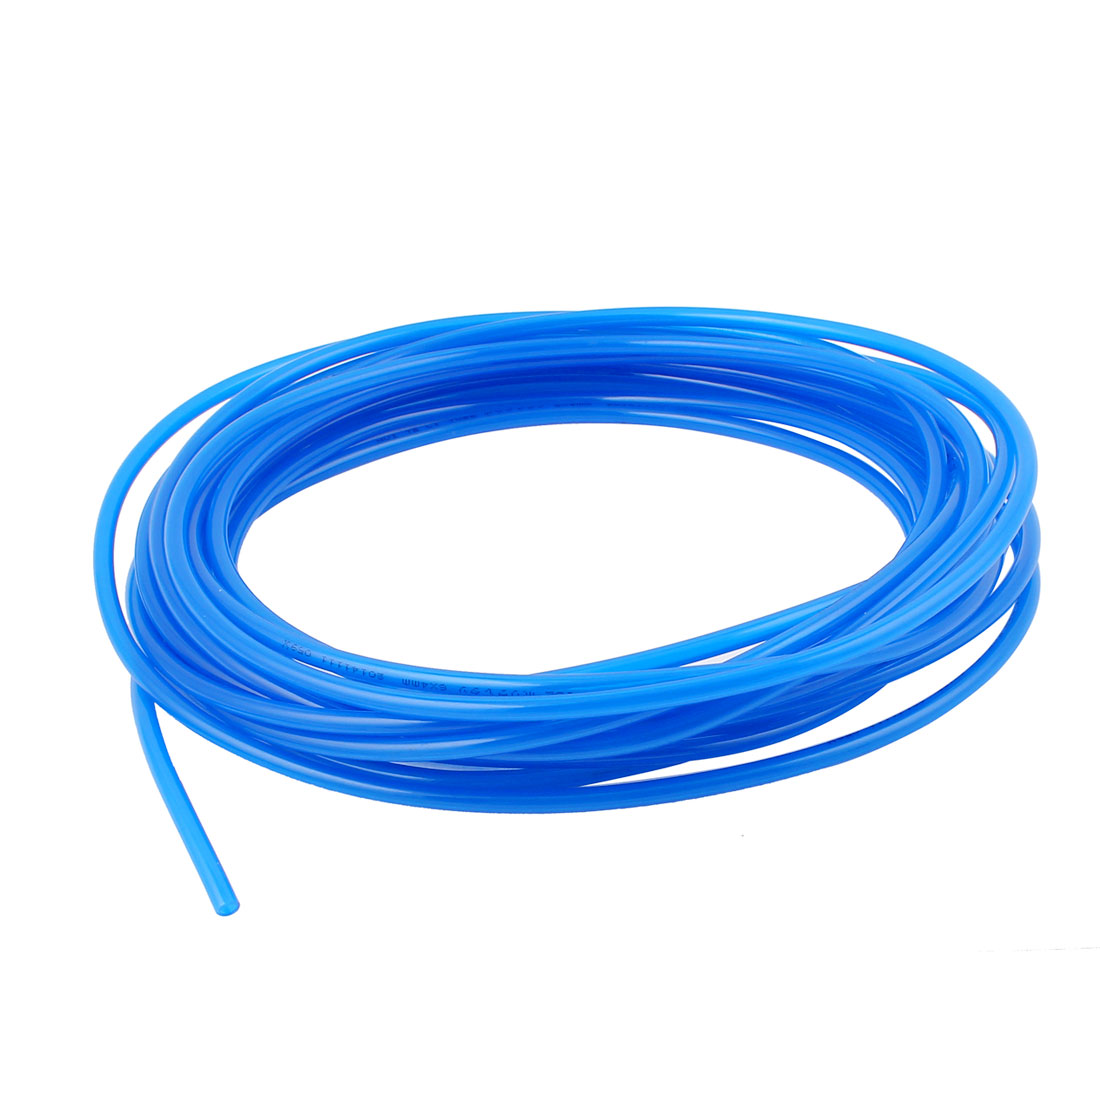 10M 32.8Ft Length 6mm x4mm Polyurethane PU Air Hose Pipe Tube Blue